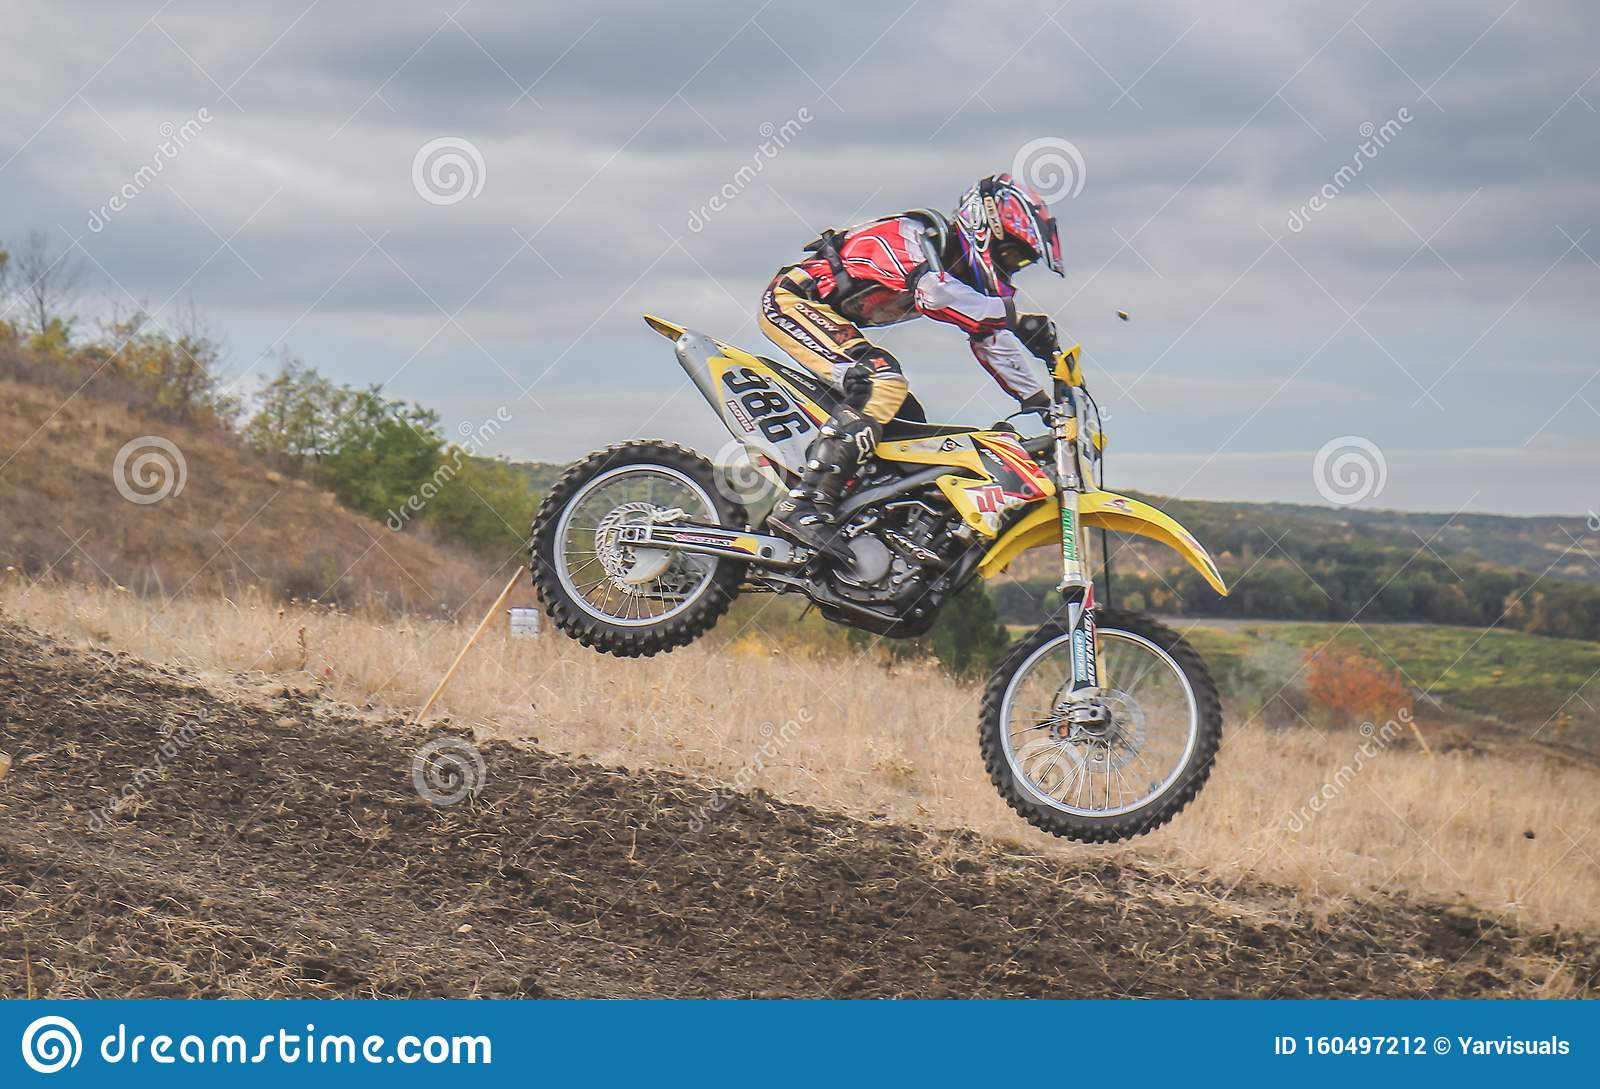 4 624 Bike Dirt Rider Stunt Photos Free Royalty Free Stock Photos From Dreamstime